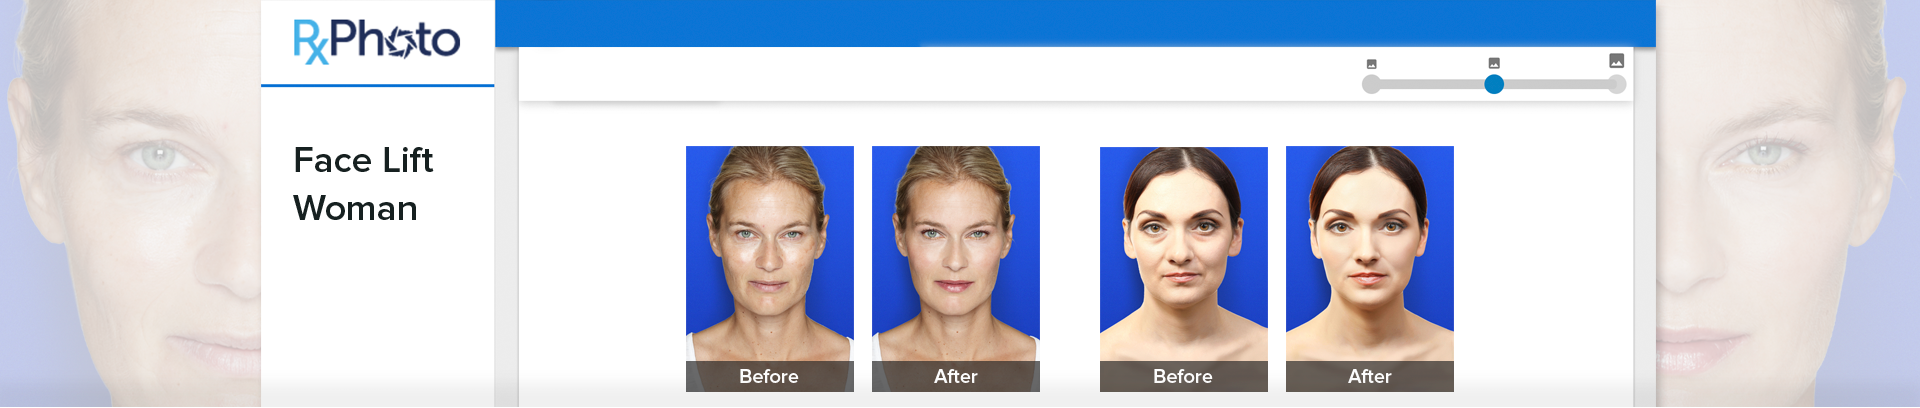 face lift woman before and after photography